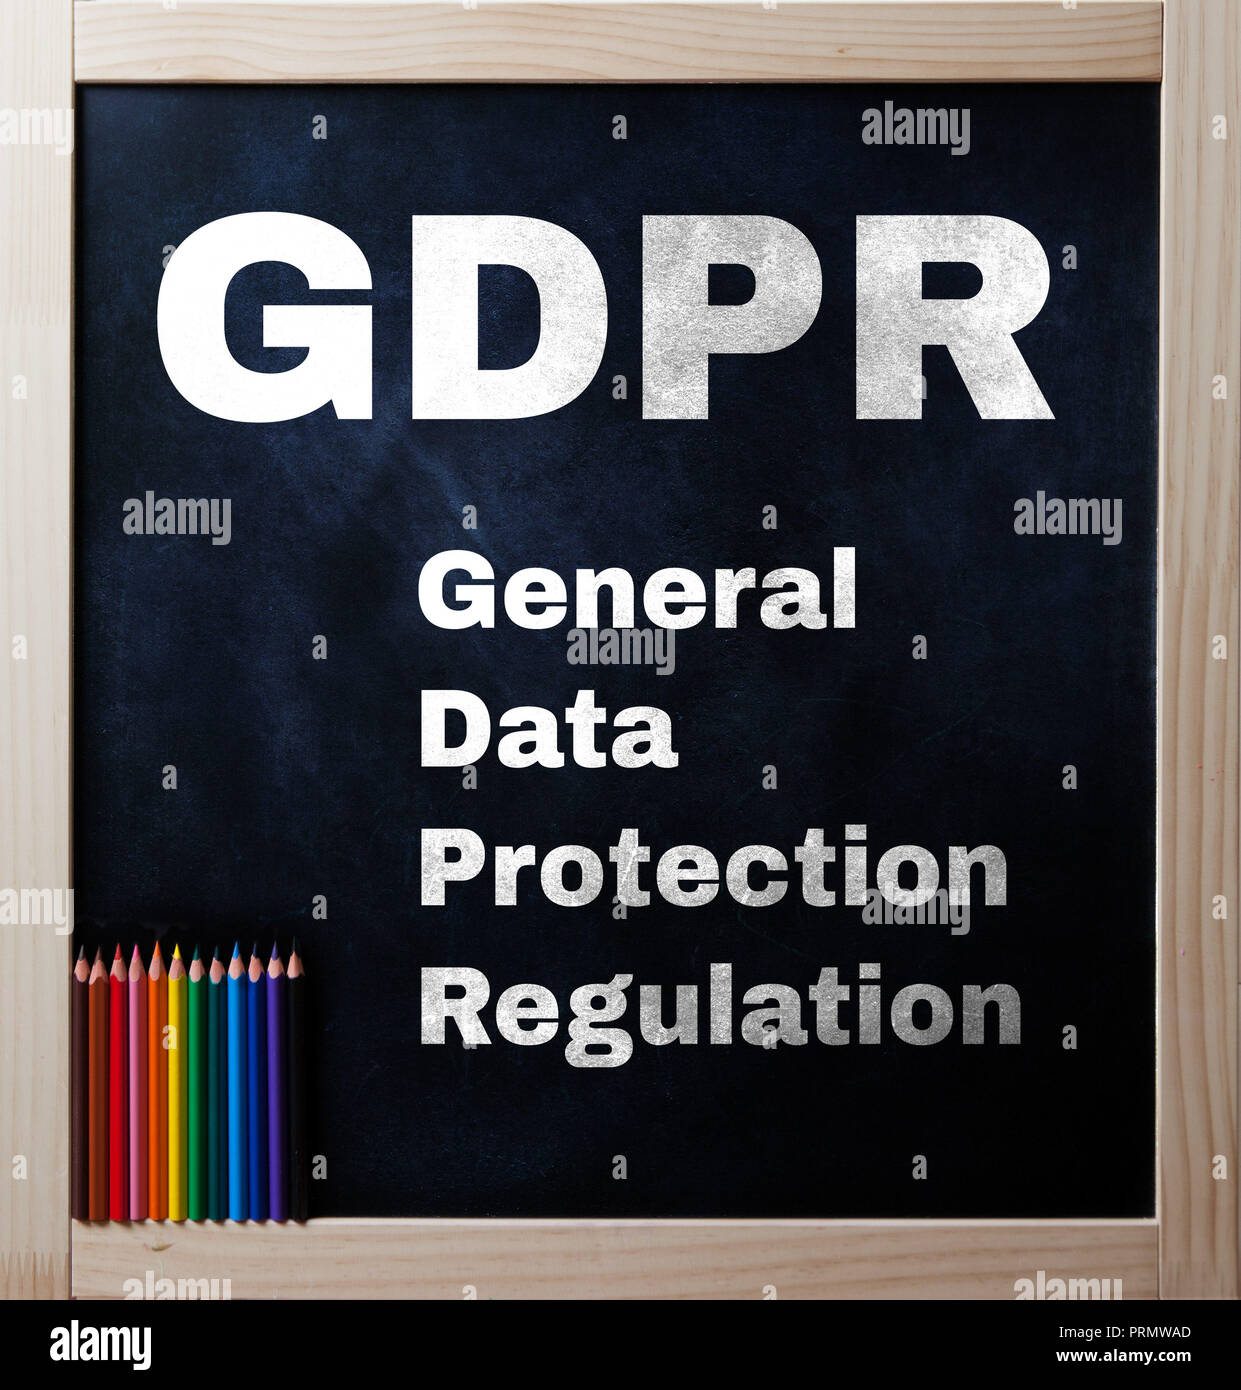 General Data Protectioin Regulation text on black chalkboard - Stock Image